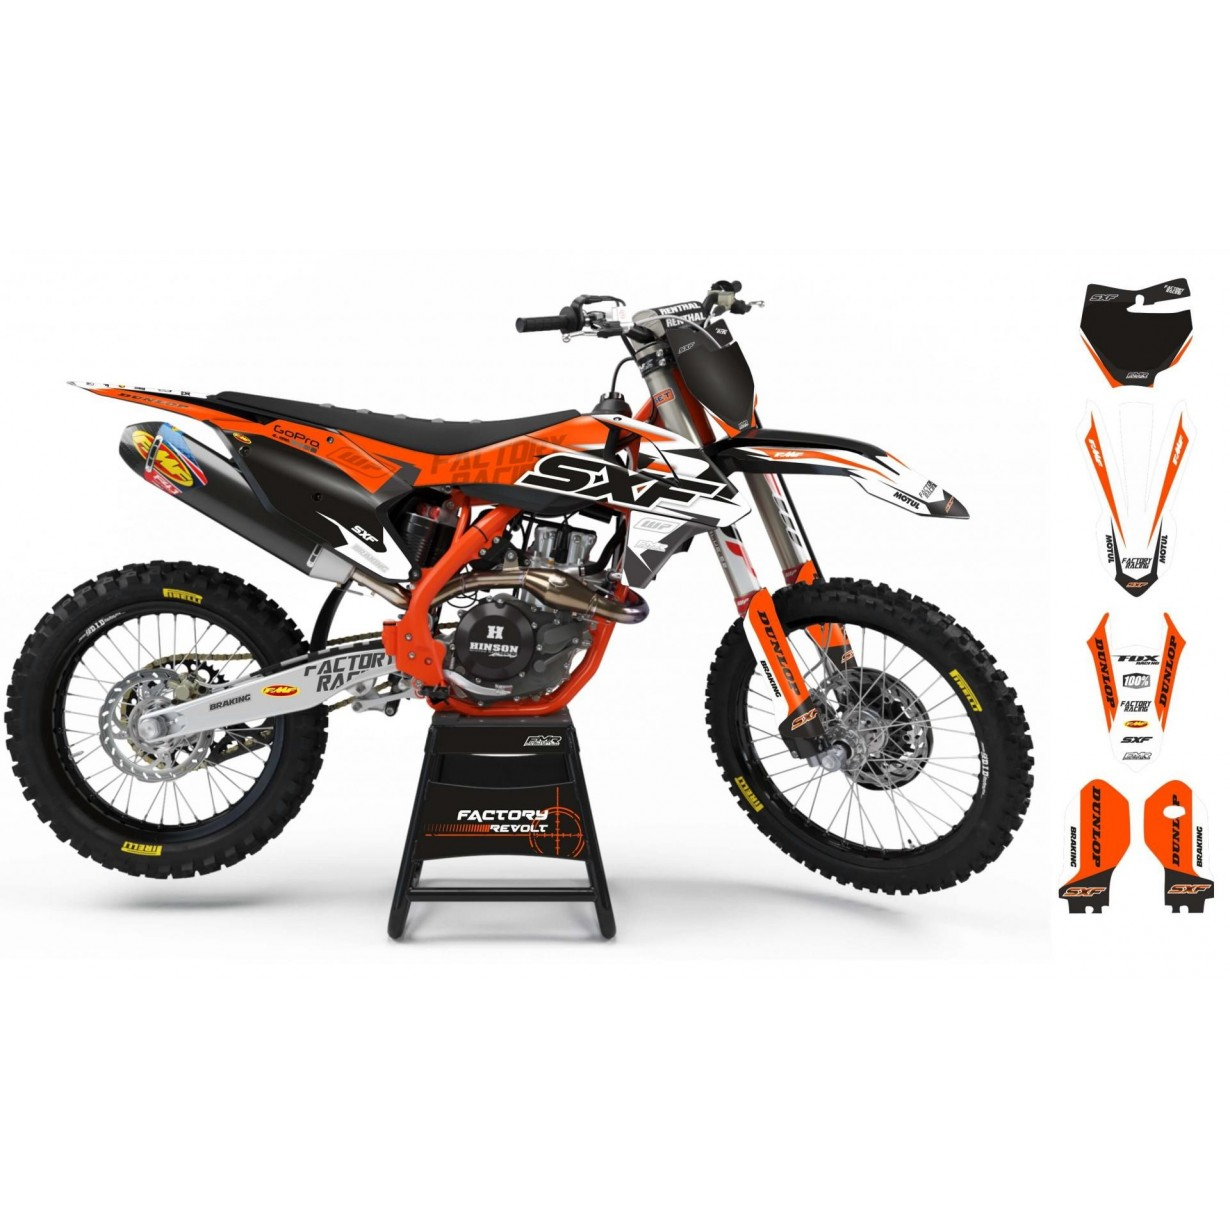 Kit déco Perso KTM Factory Revolt A26C5 white/orange